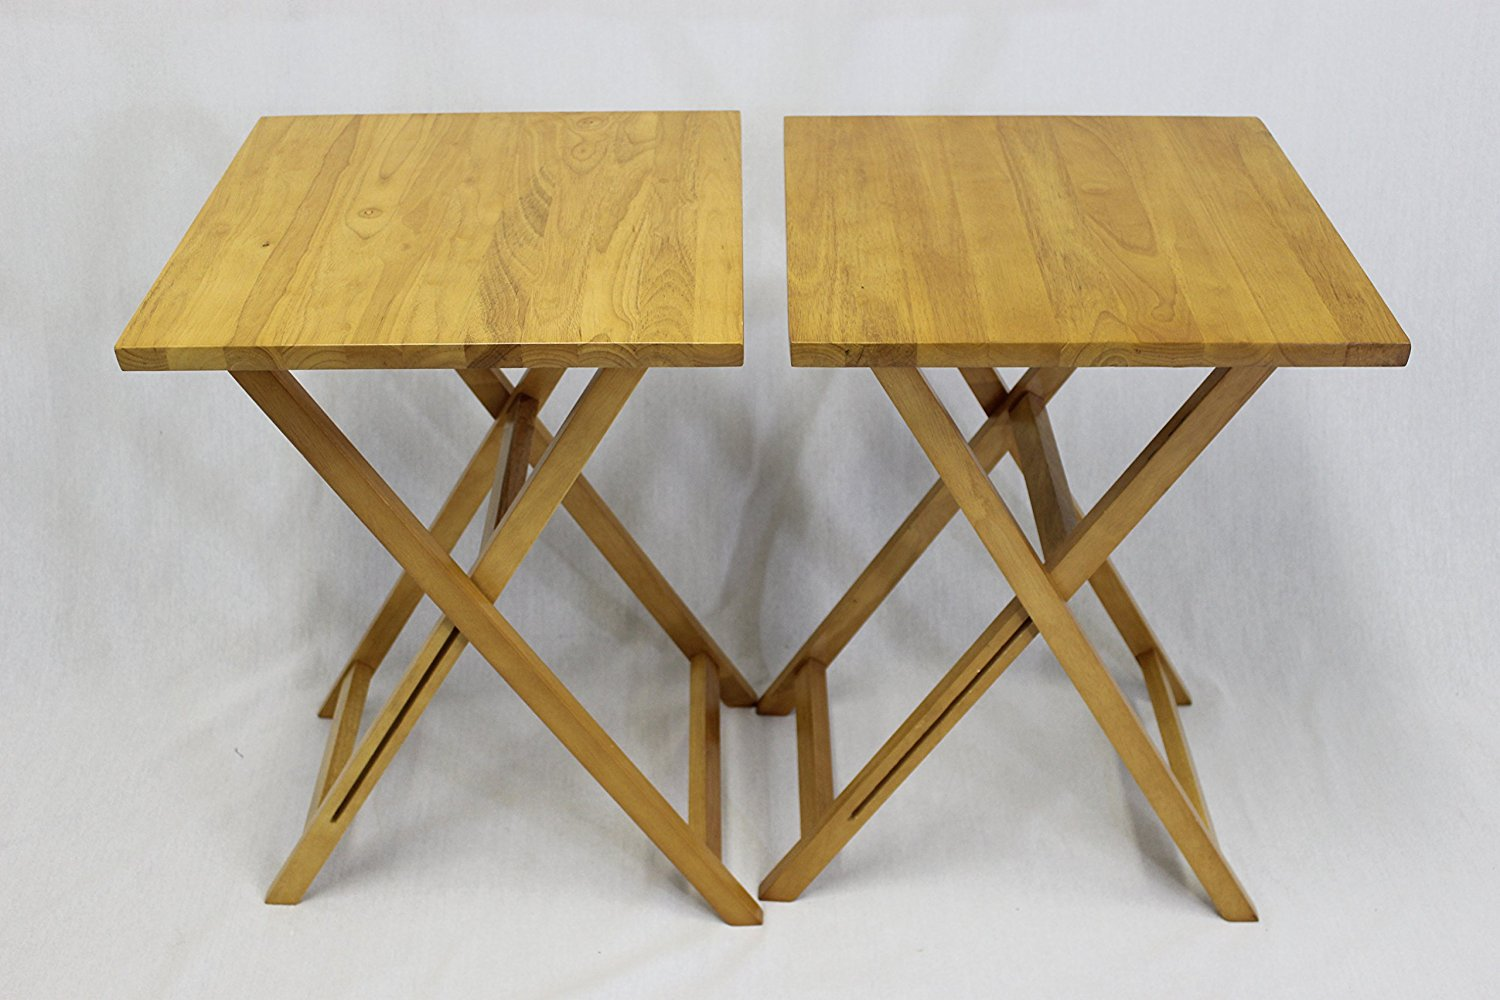 Merveilleux EHemco Ez Folding TV Tray Table Square Top   Hard Wood In Pecan Set Of 2